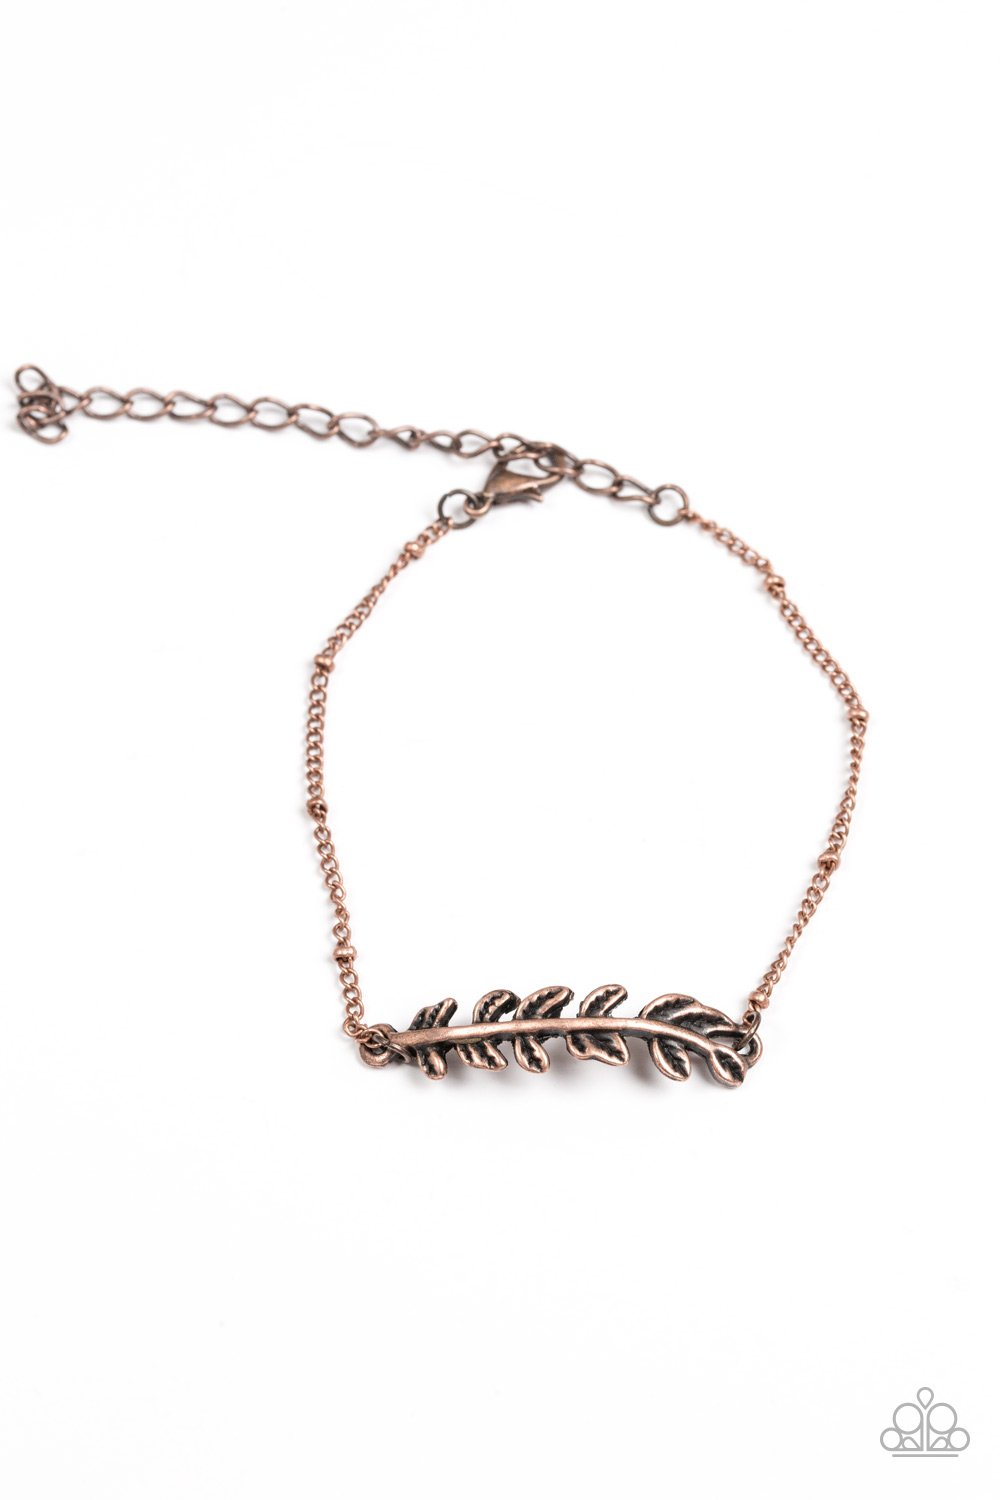 Paparazzi Accessories ~ Bet The BRANCH - Copper